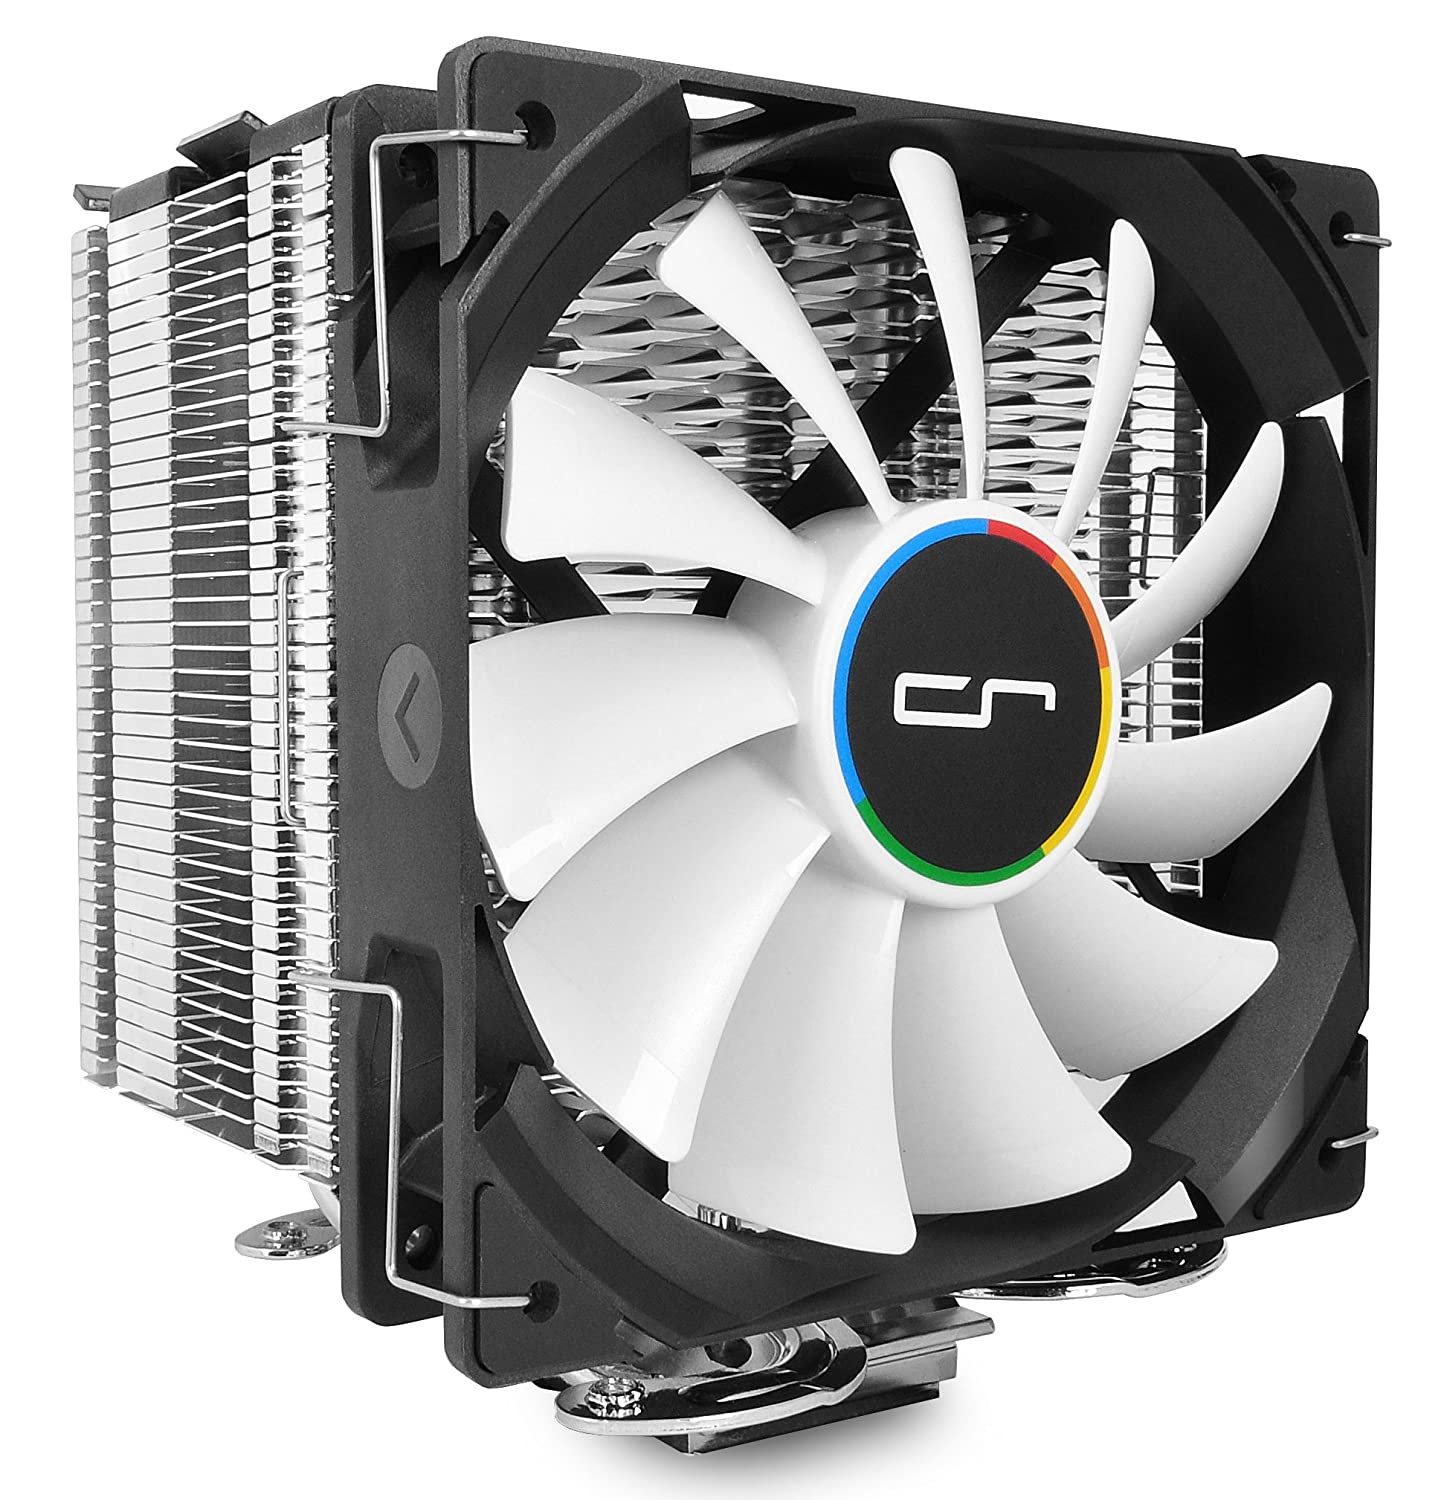 Cryorig H7 Tower Cooler For Amd/Intel Cpu's by Cryorig